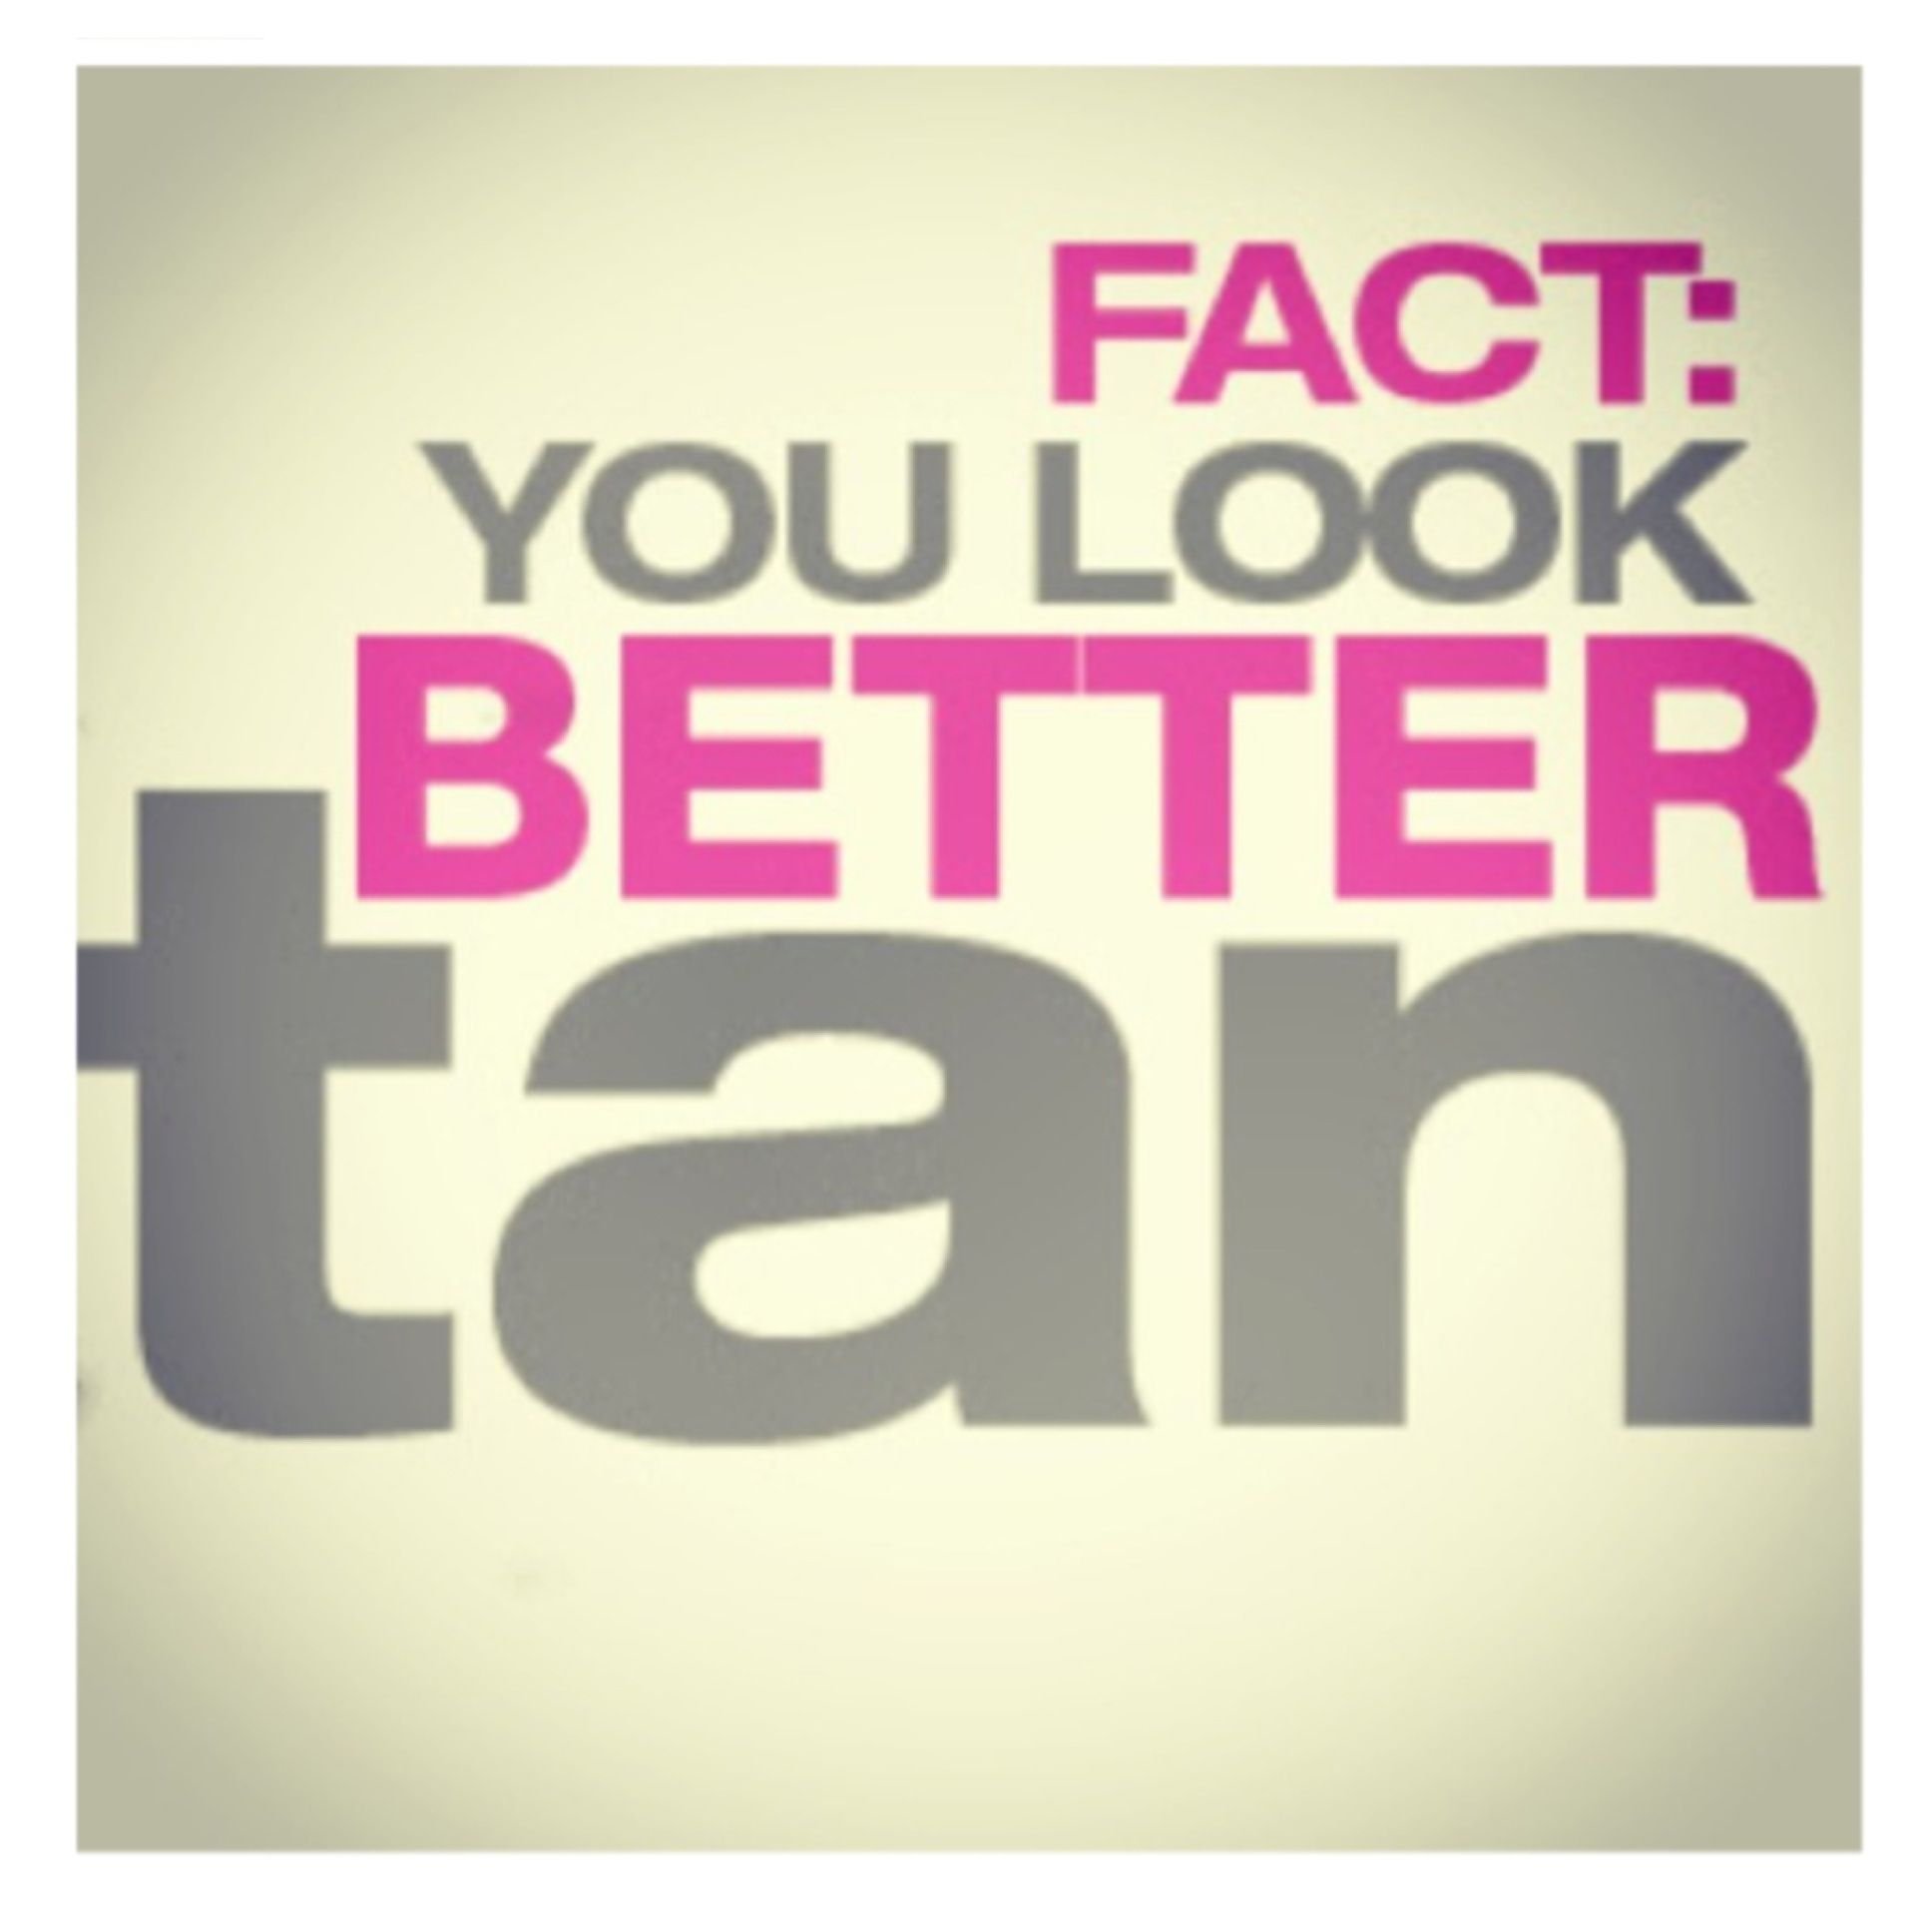 It s a fact e by Shoreline Tan and let us help you a